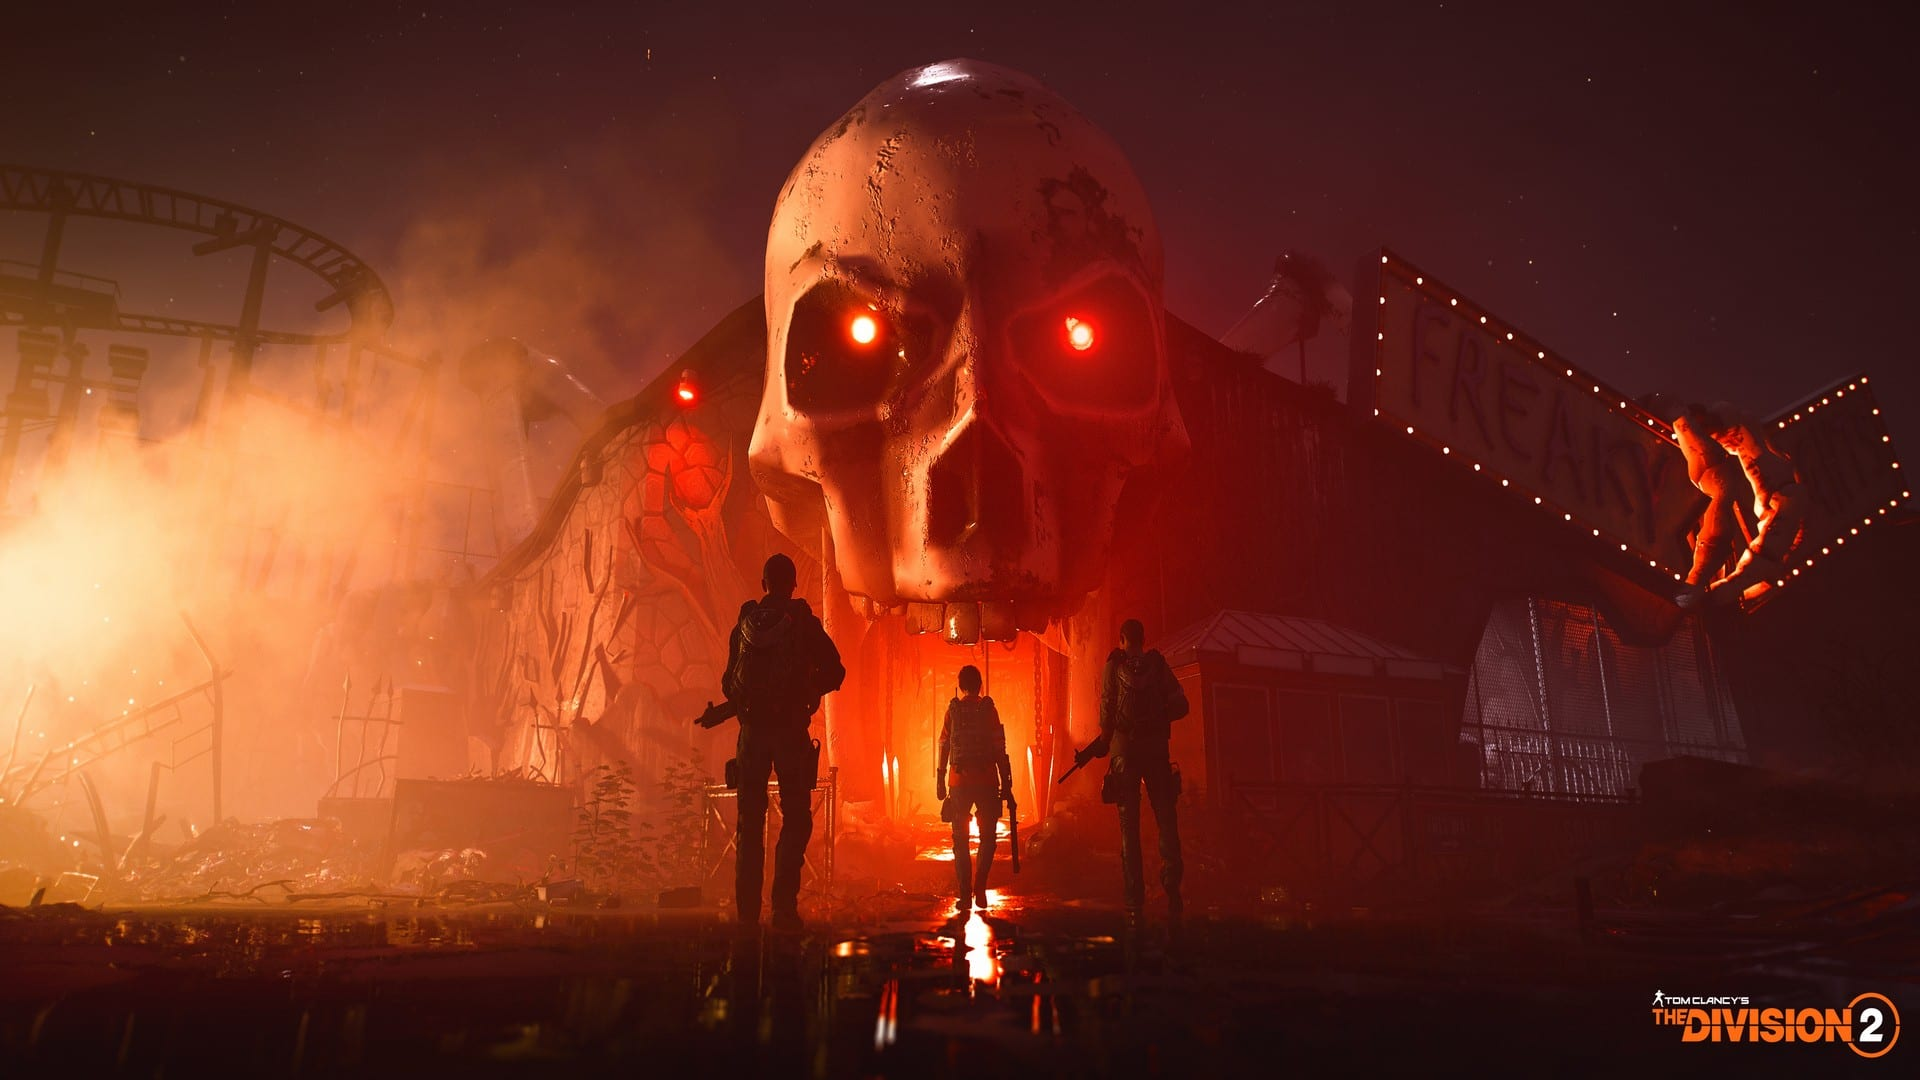 The Division 2 – Episode 3 'Coney Island: The Hunt' coming February 2020